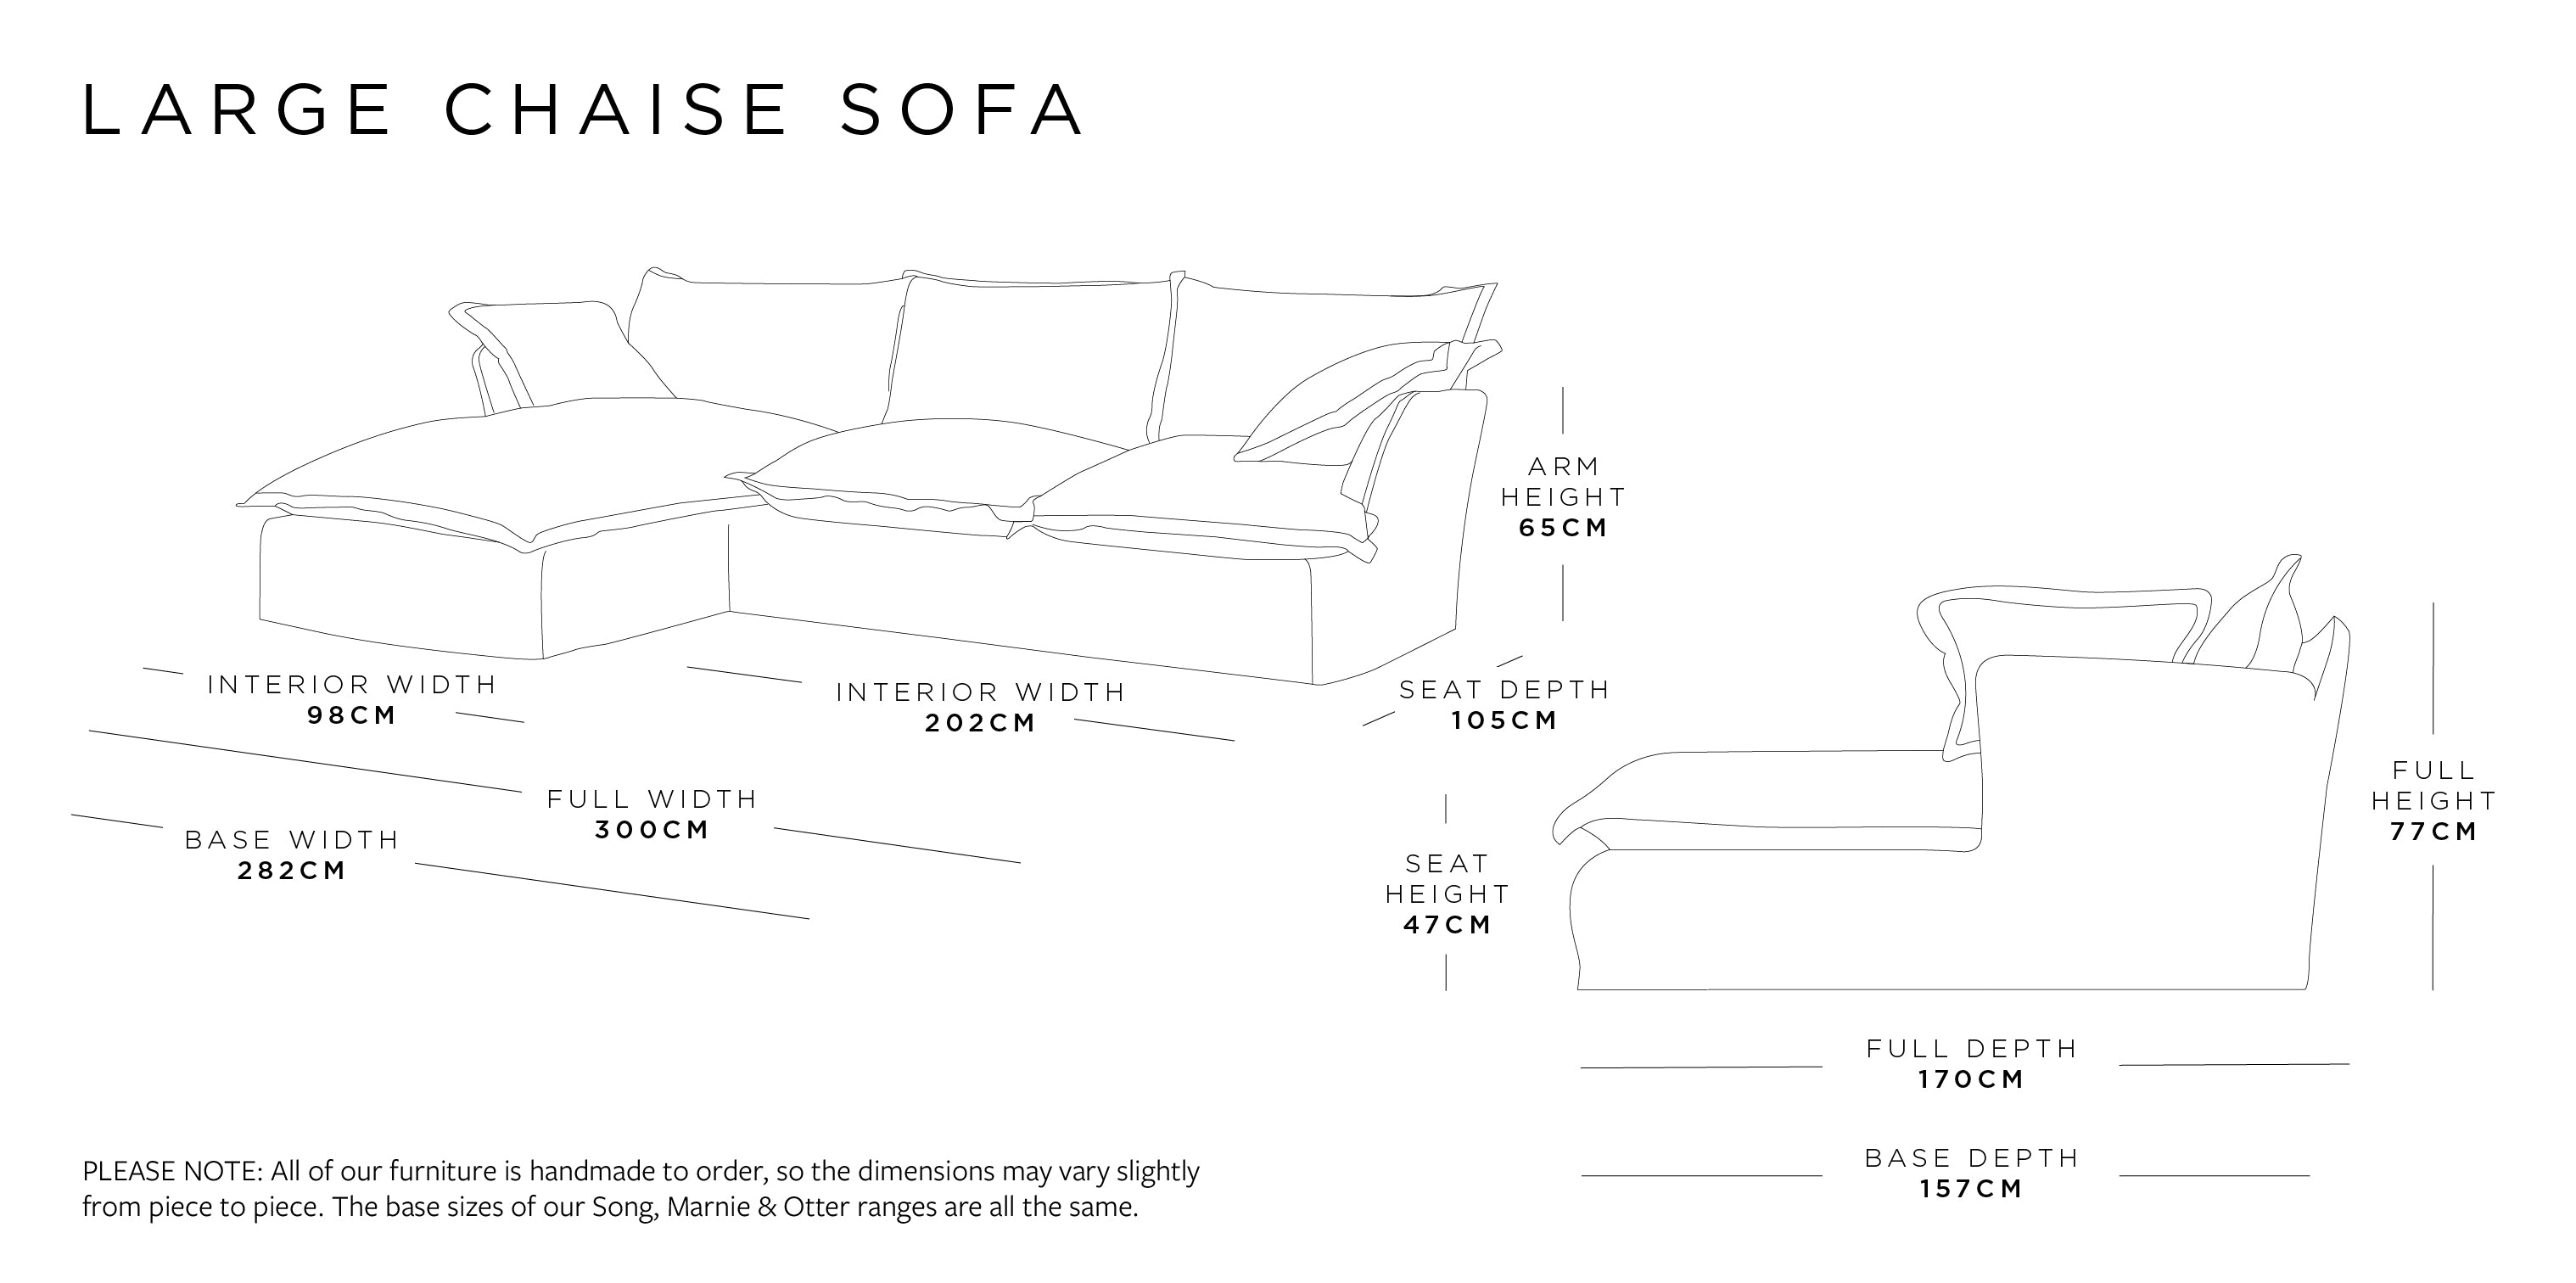 large-chaise-sofa-dimensions